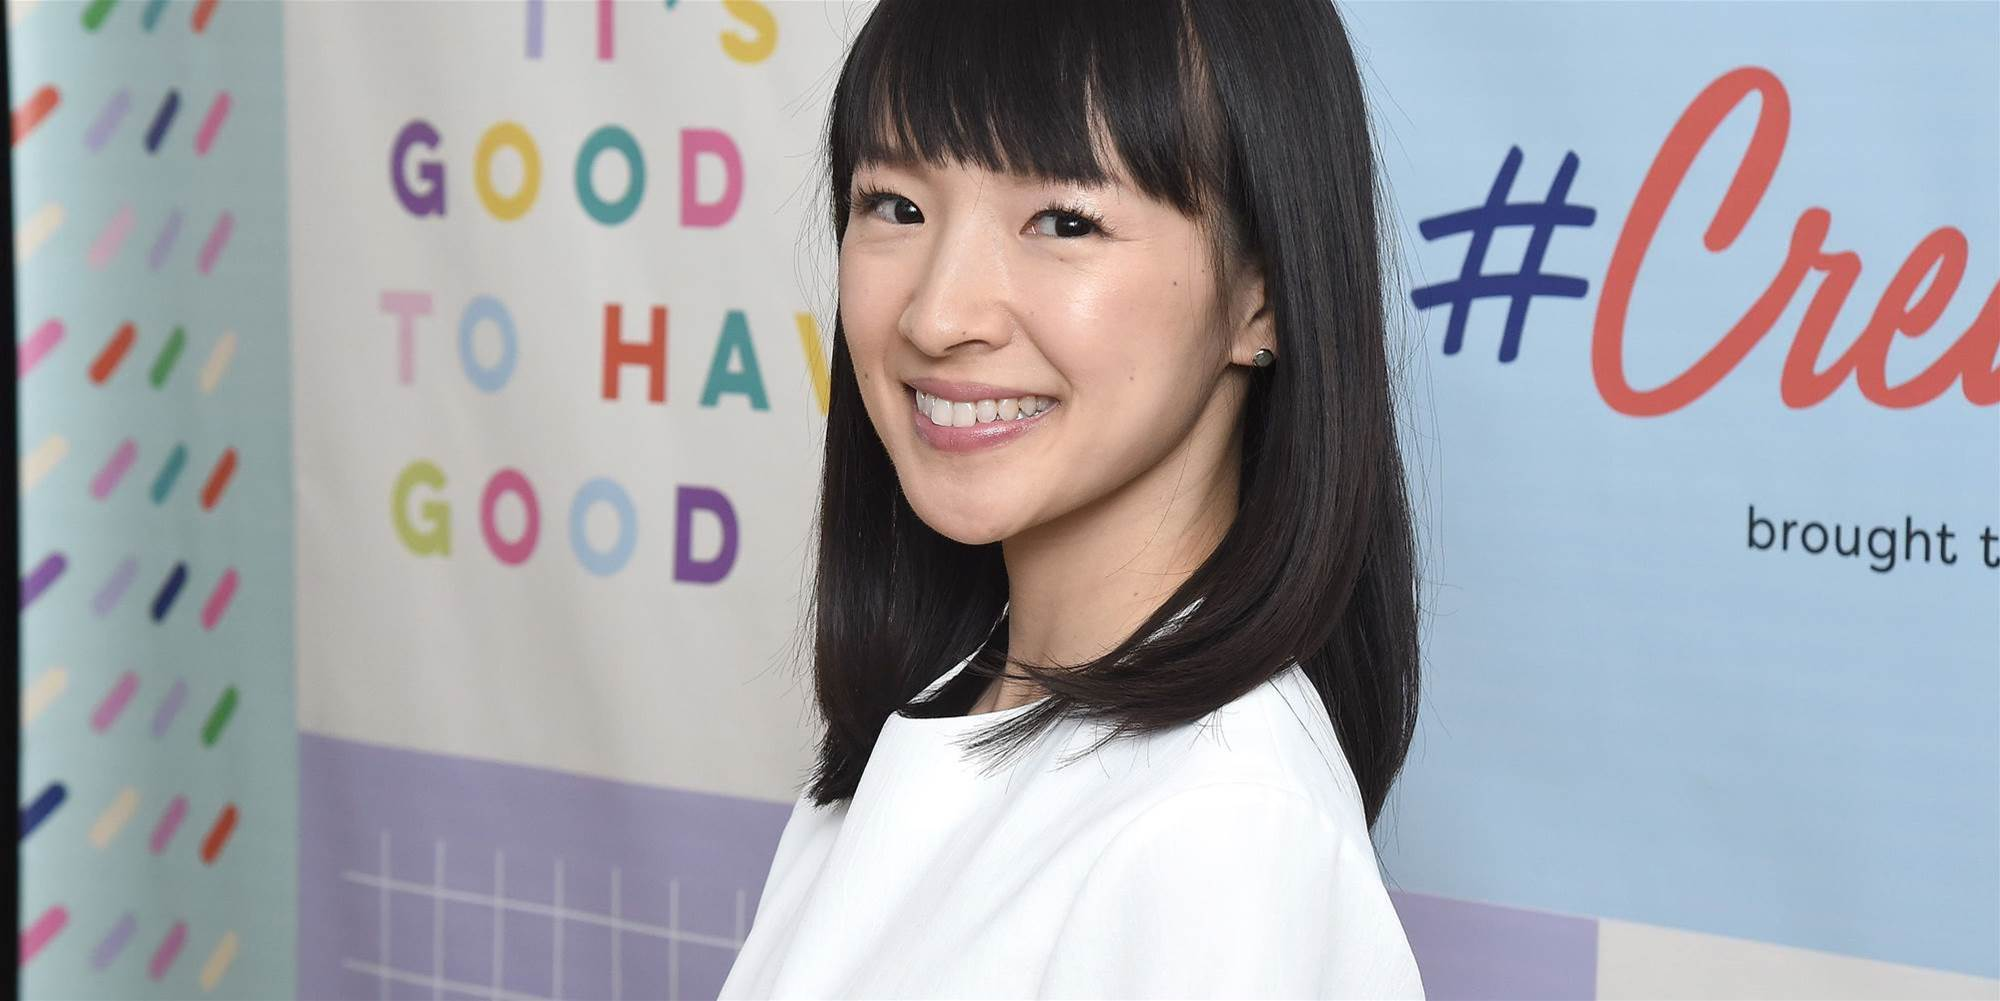 Listen to Marie Kondo: Tidying Up Could Improve Your Mental Health